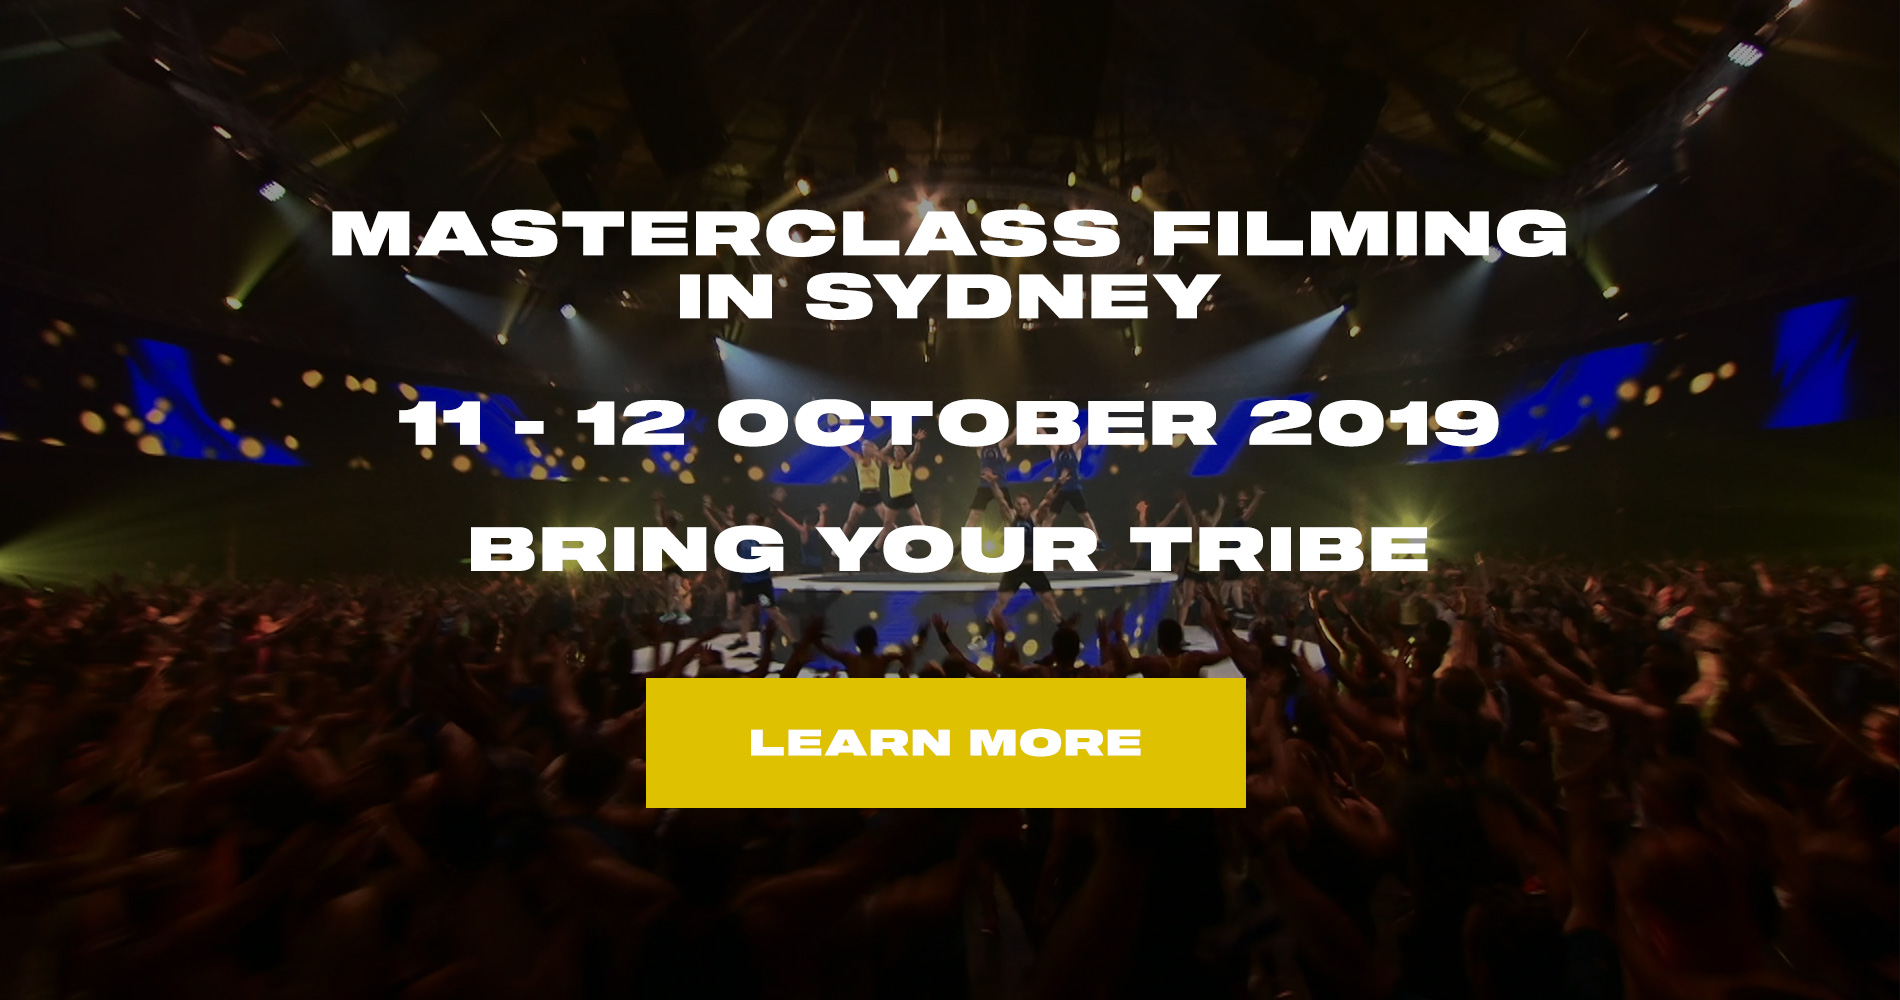 Masterclass Filming in Sydney | Les Mills Asia Pacific